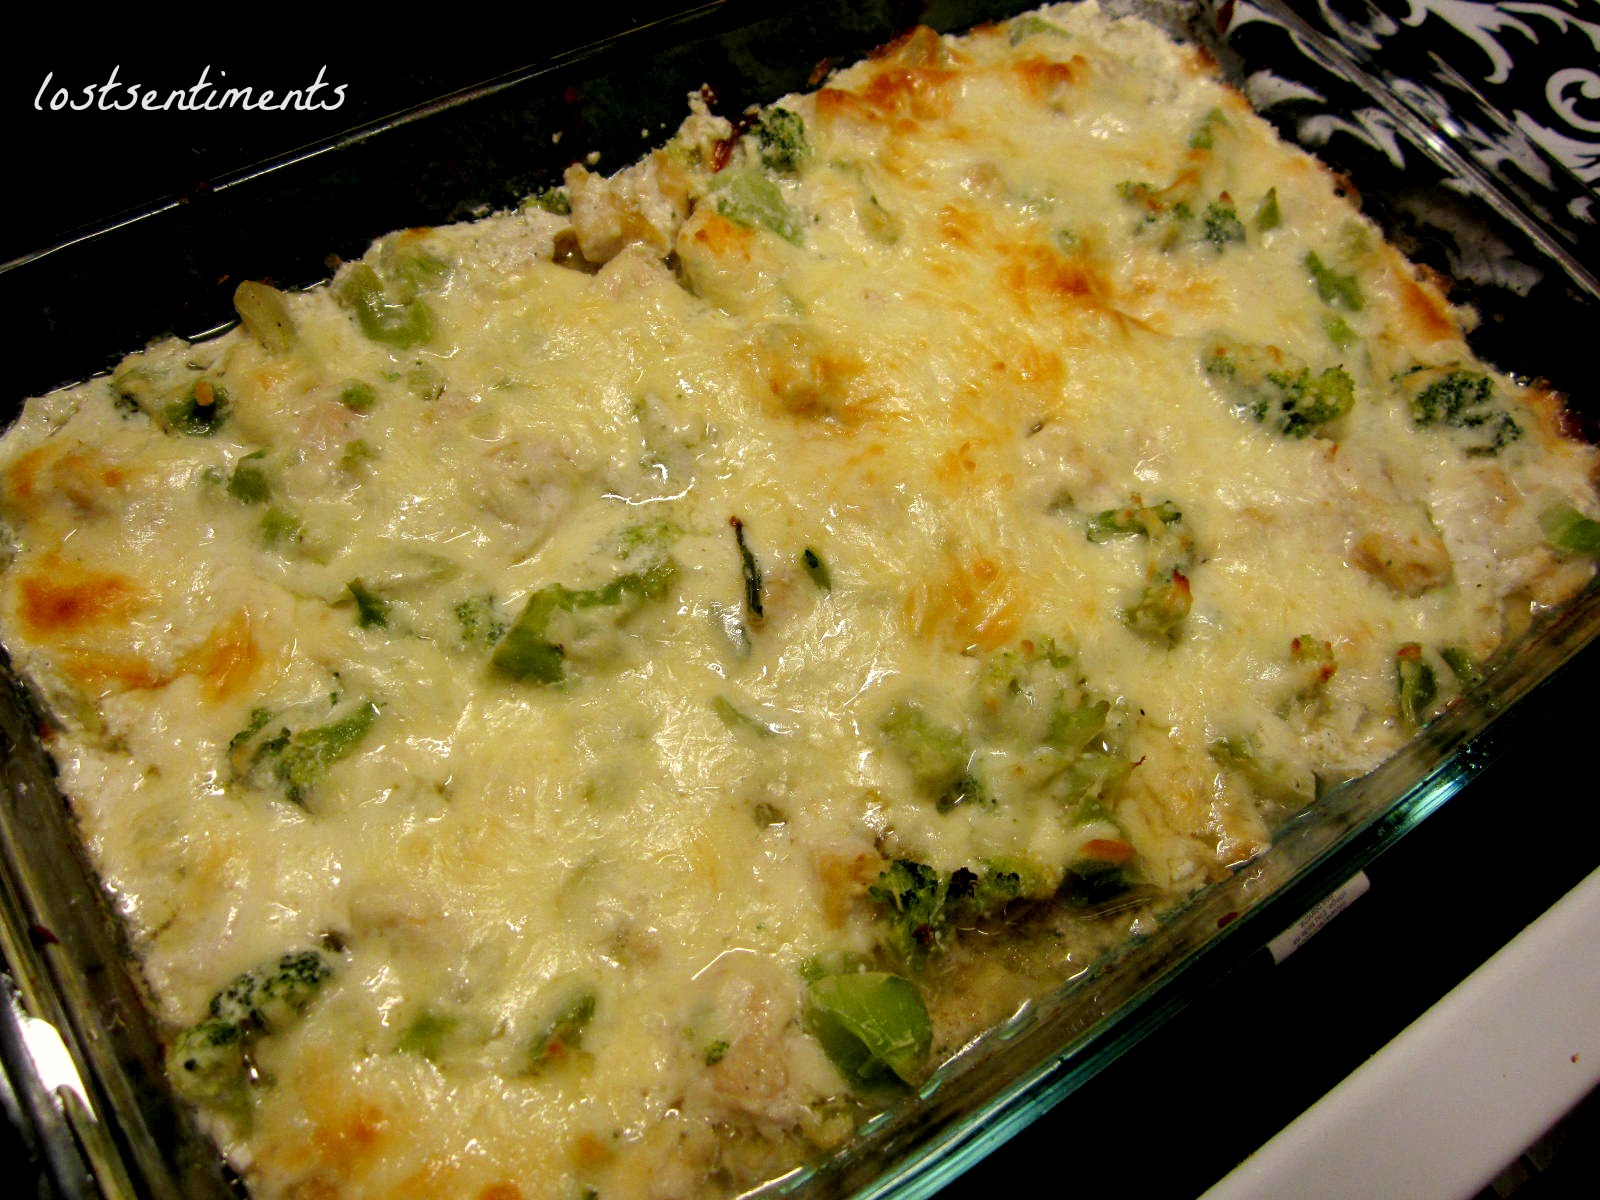 Chicken Broccoli Cauliflower Casserole Low Carb  lostsentiments Chicken and Broccoli Cheesy Casserole